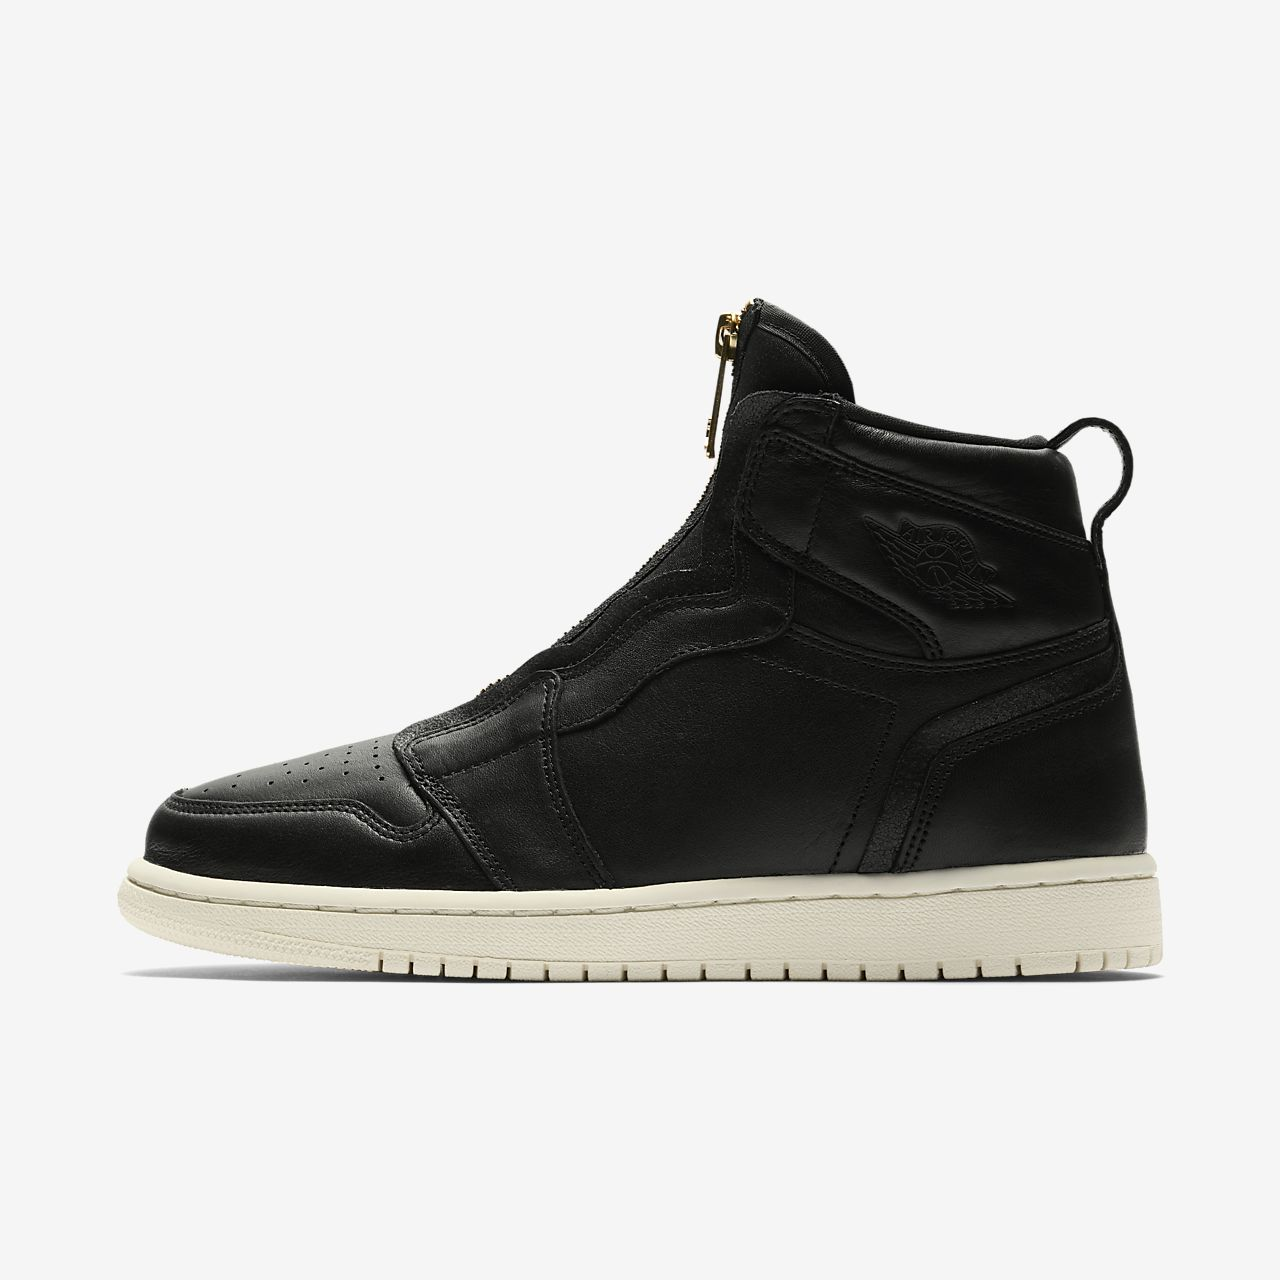 b53268d65cf64 Air Jordan 1 High Zip Women s Shoe. Nike.com GB